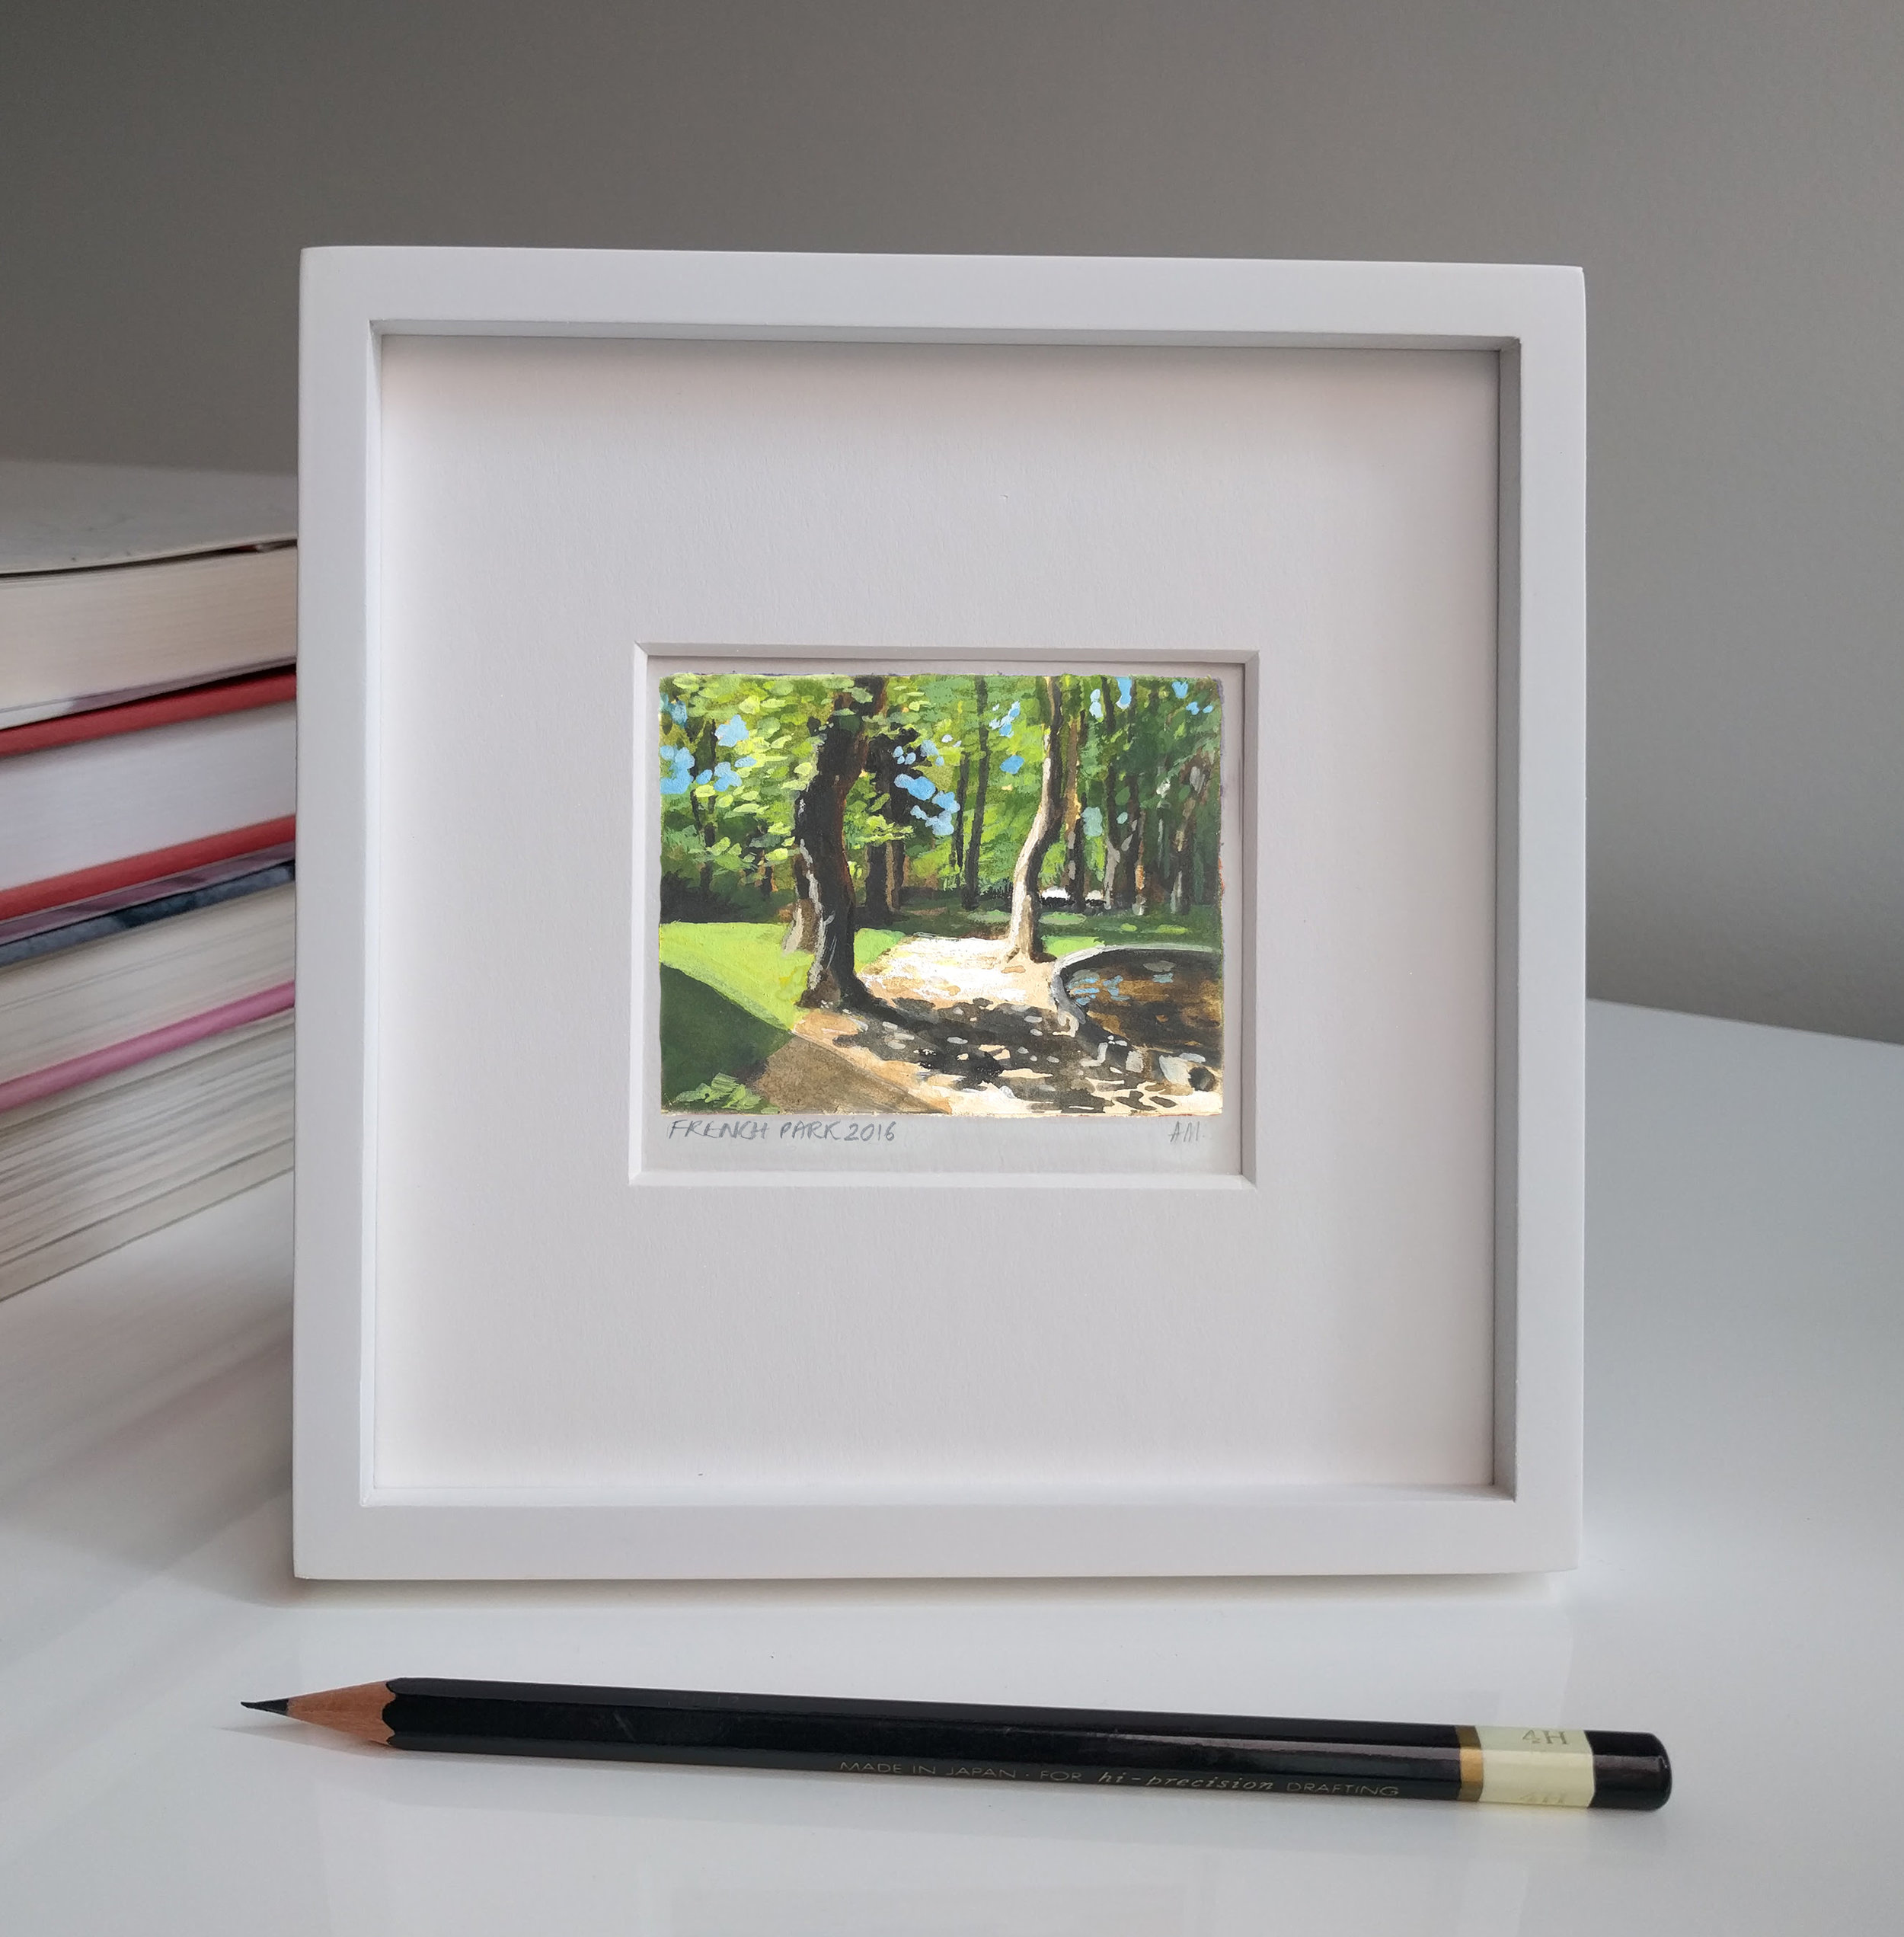 My Small Paintings miniature framed watercolour tiny art of sunlight through trees in shady garden South of France